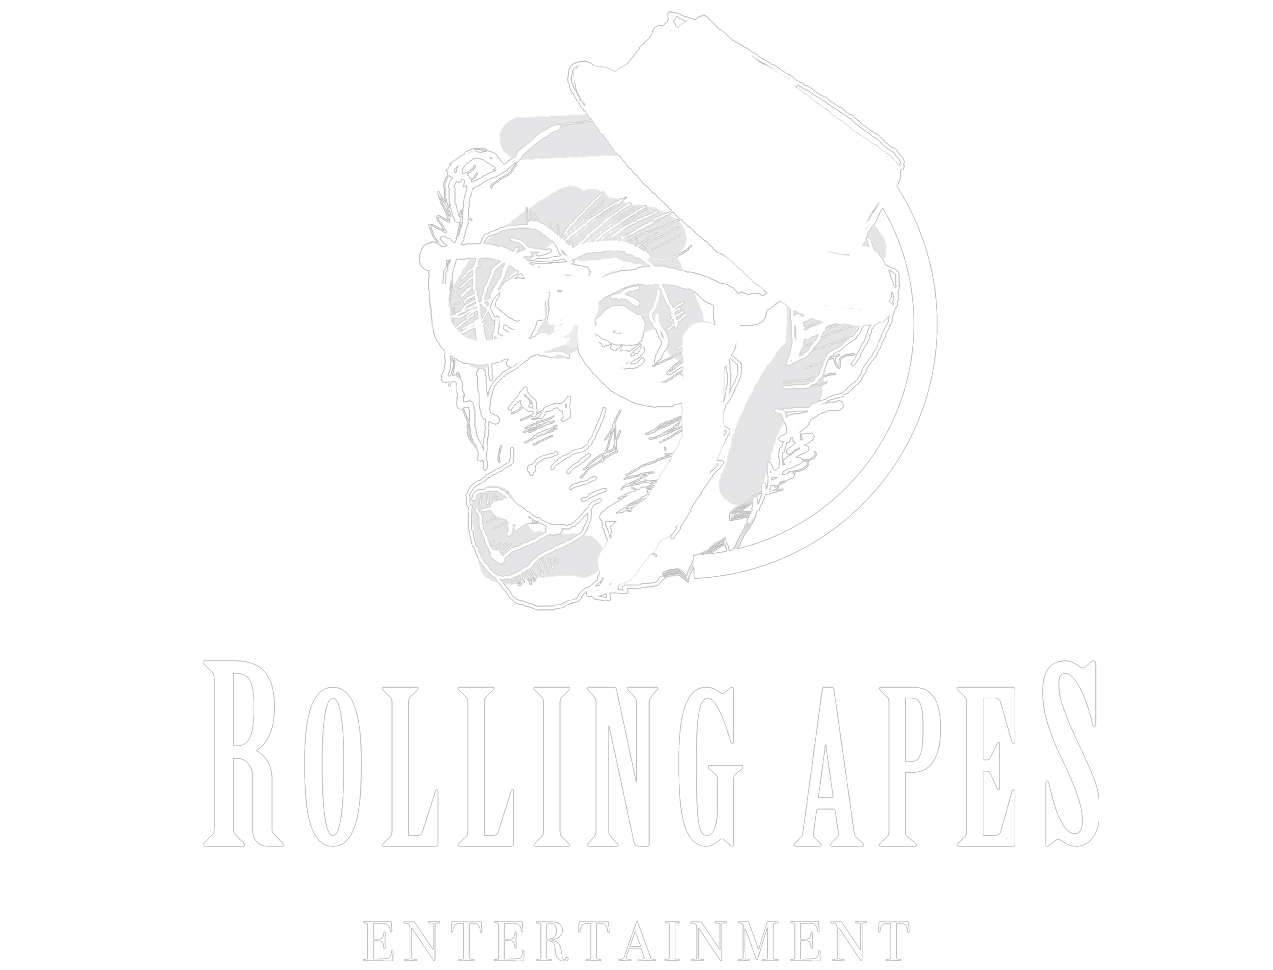 Rolling Apes Entertainment